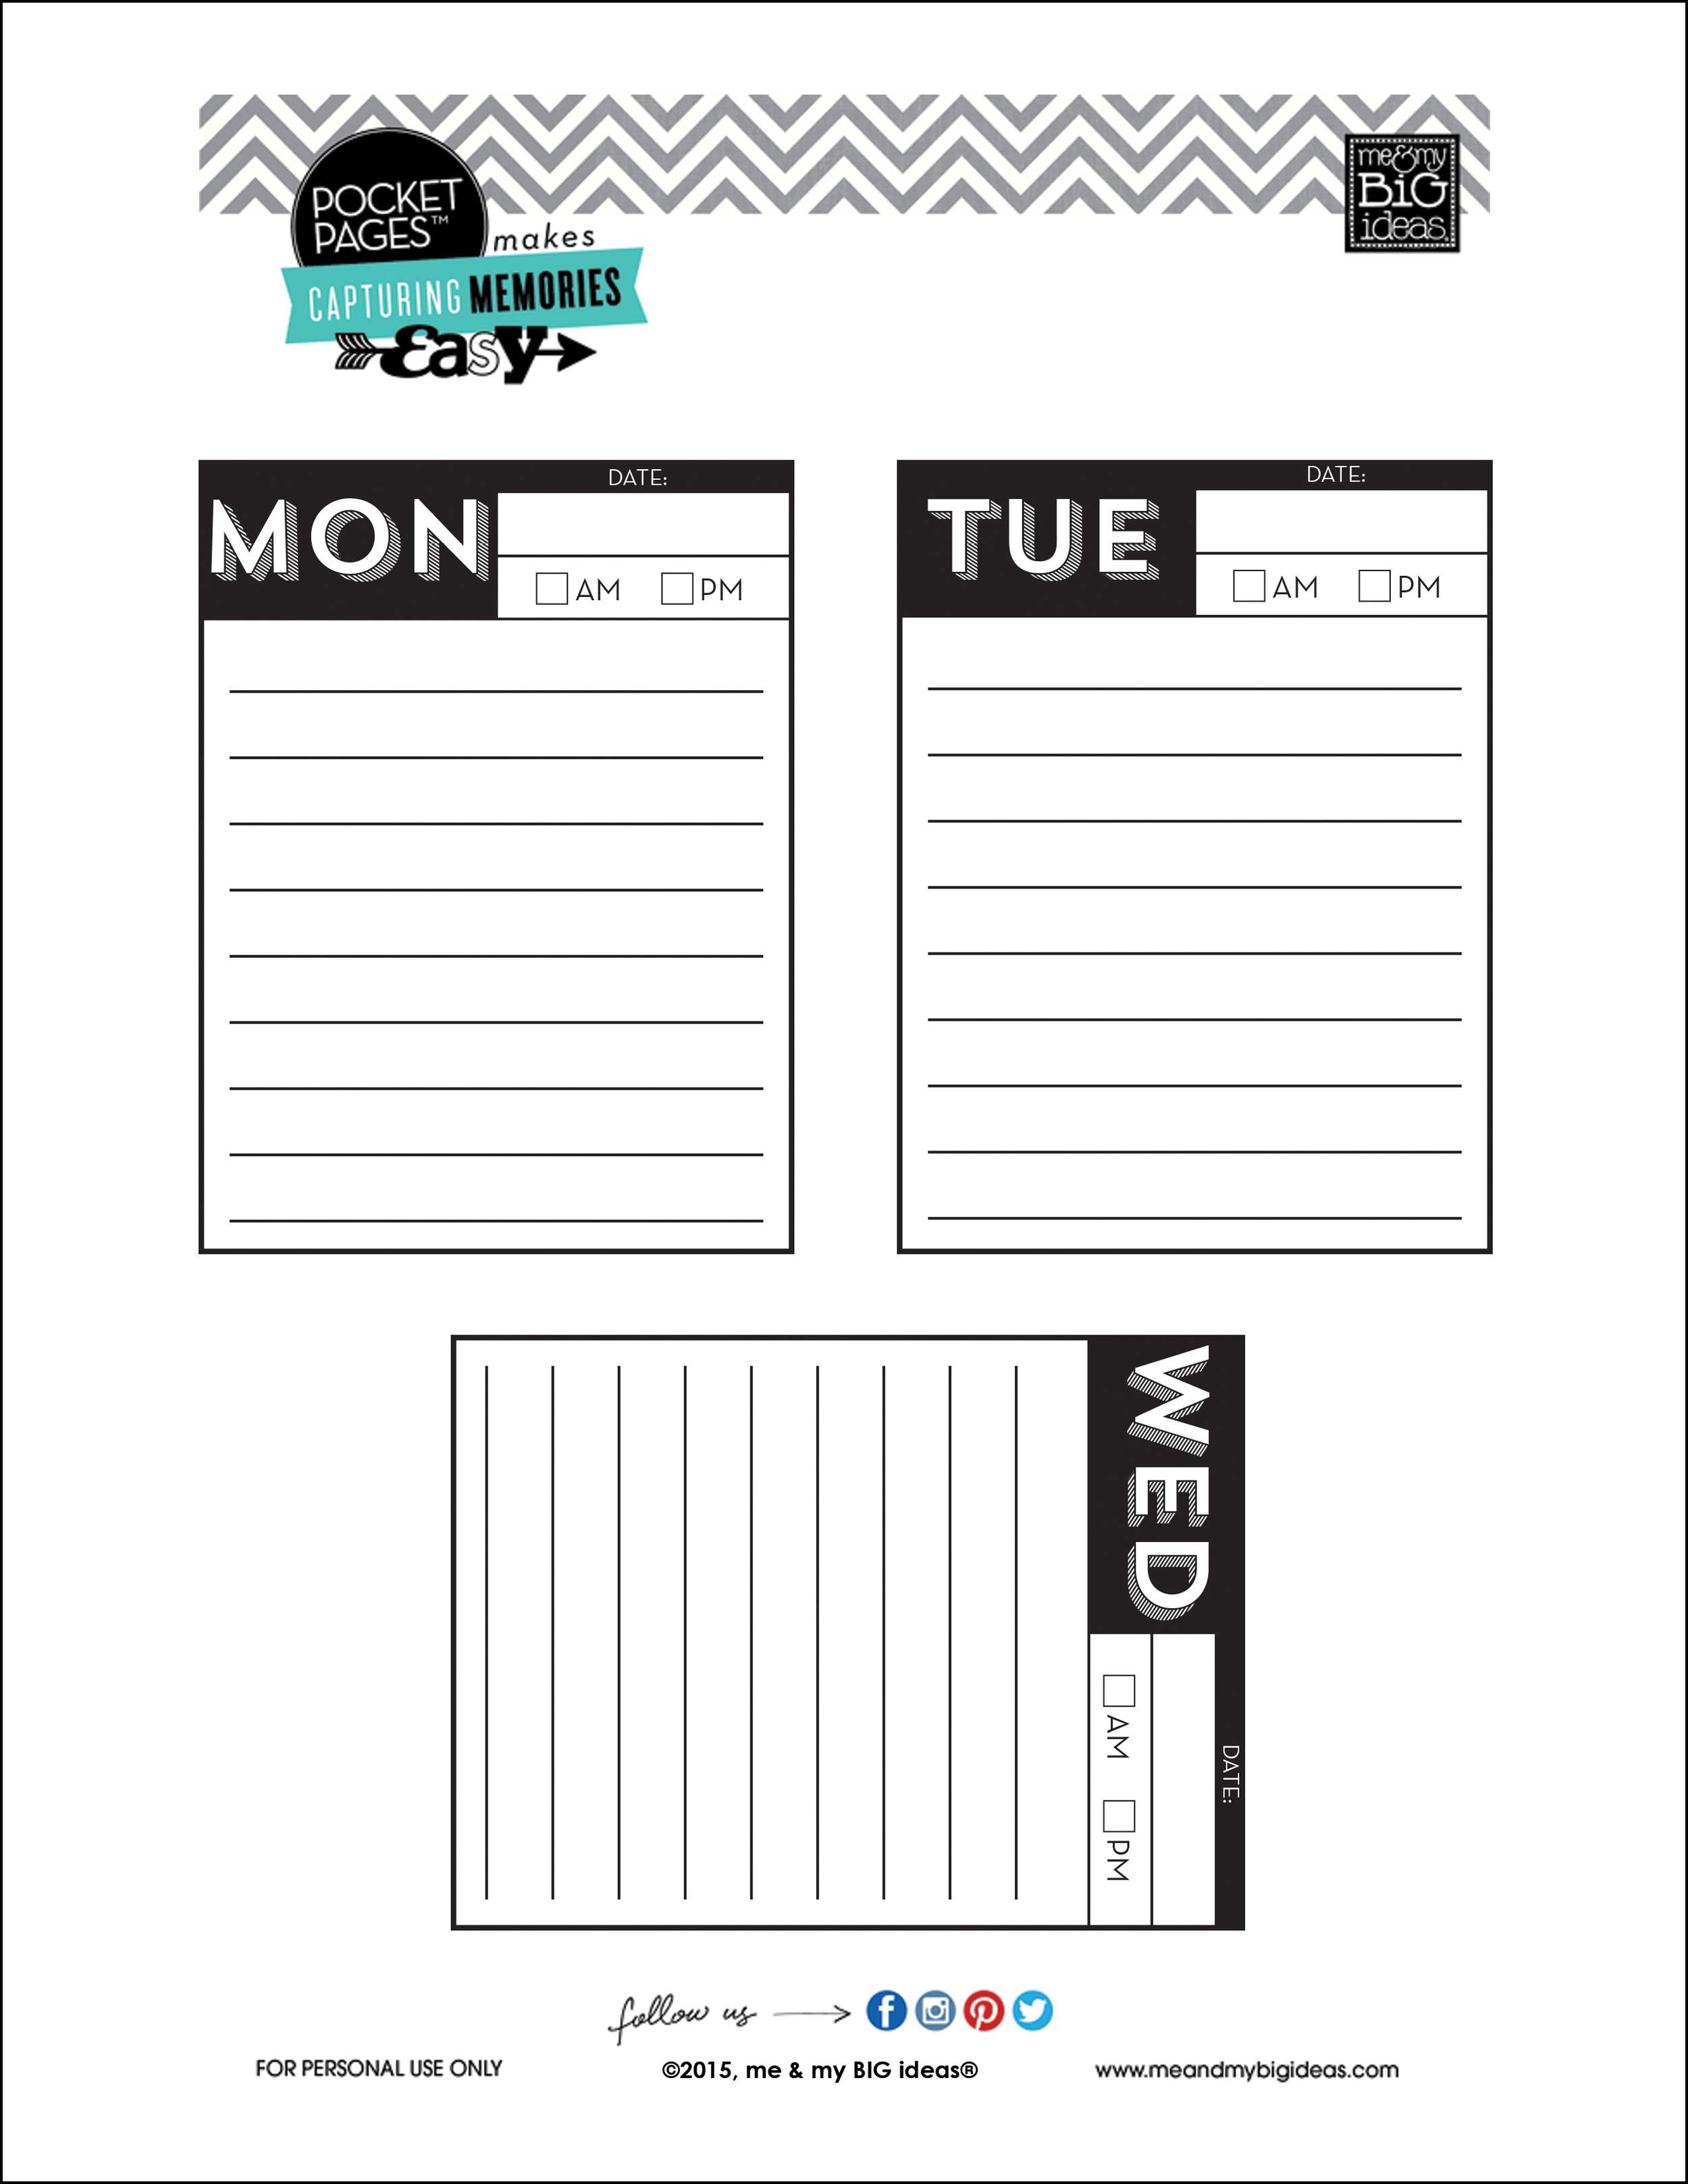 Days of the Week POCKET PAGES™ free printables | me & my BIG ideas